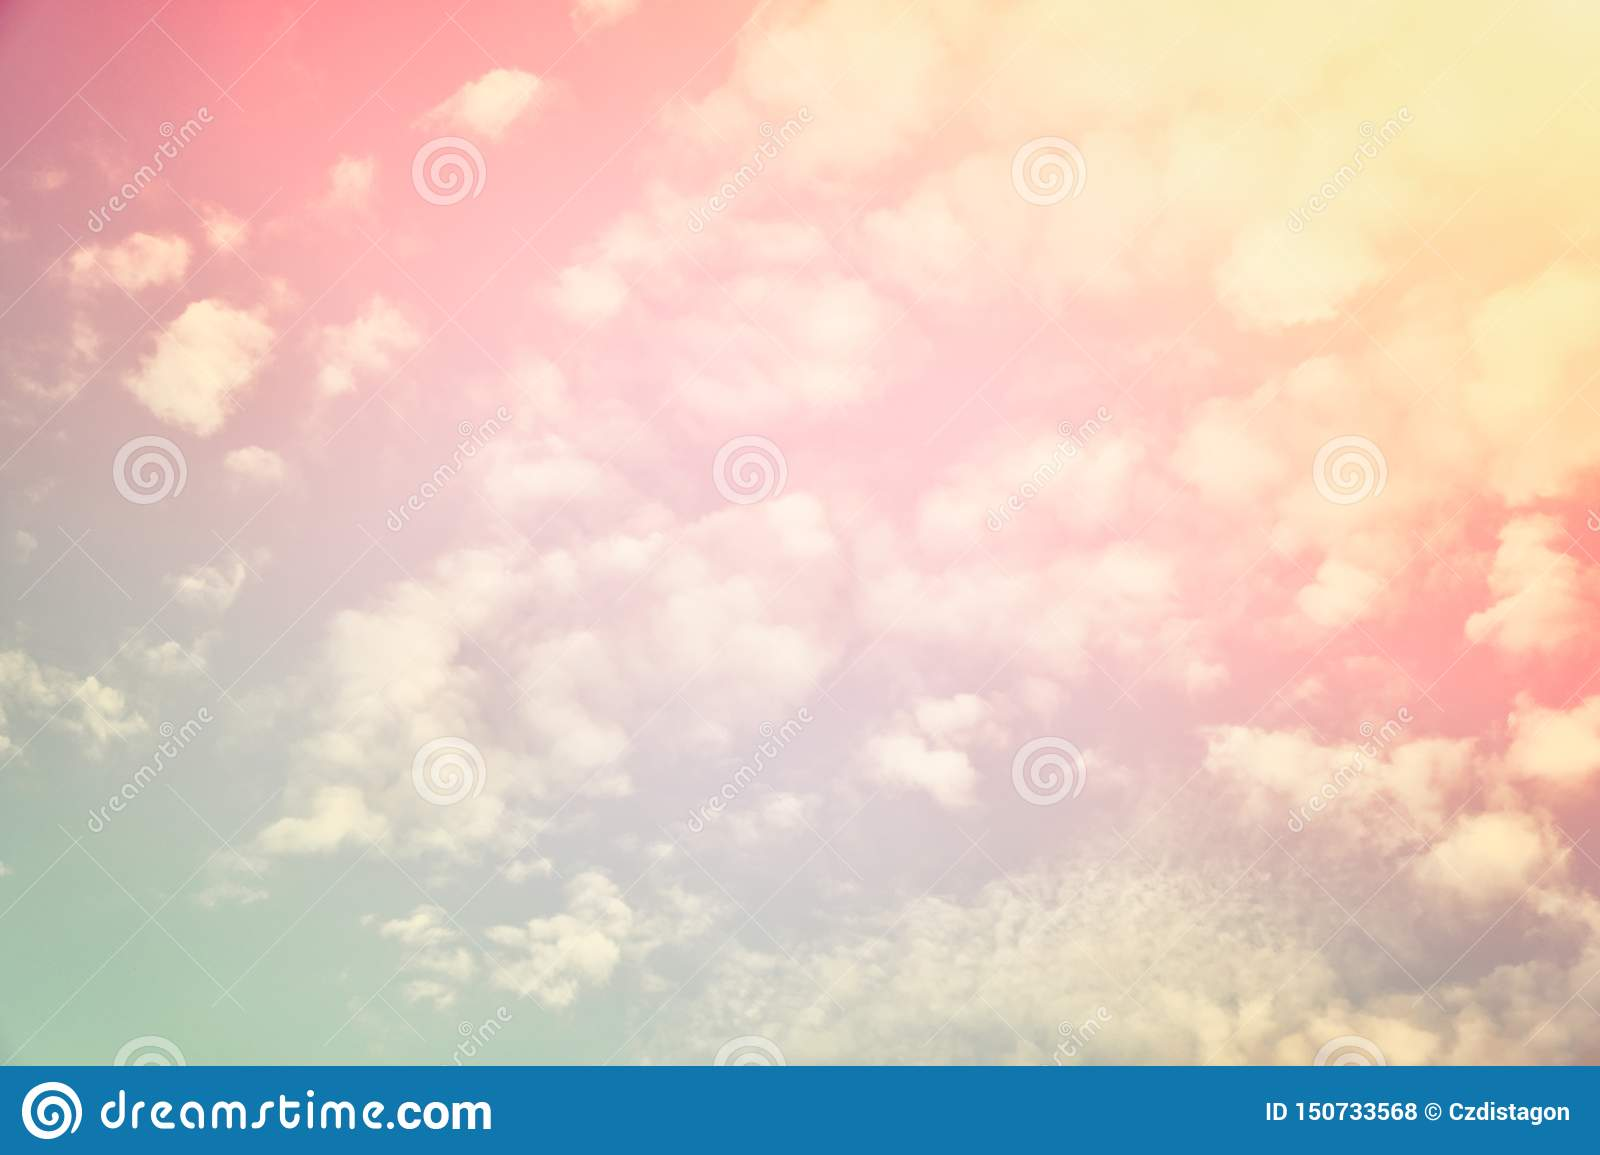 A new heaven and earth concept: Dramatic sun ray with orange sky and clouds dawn texture background.